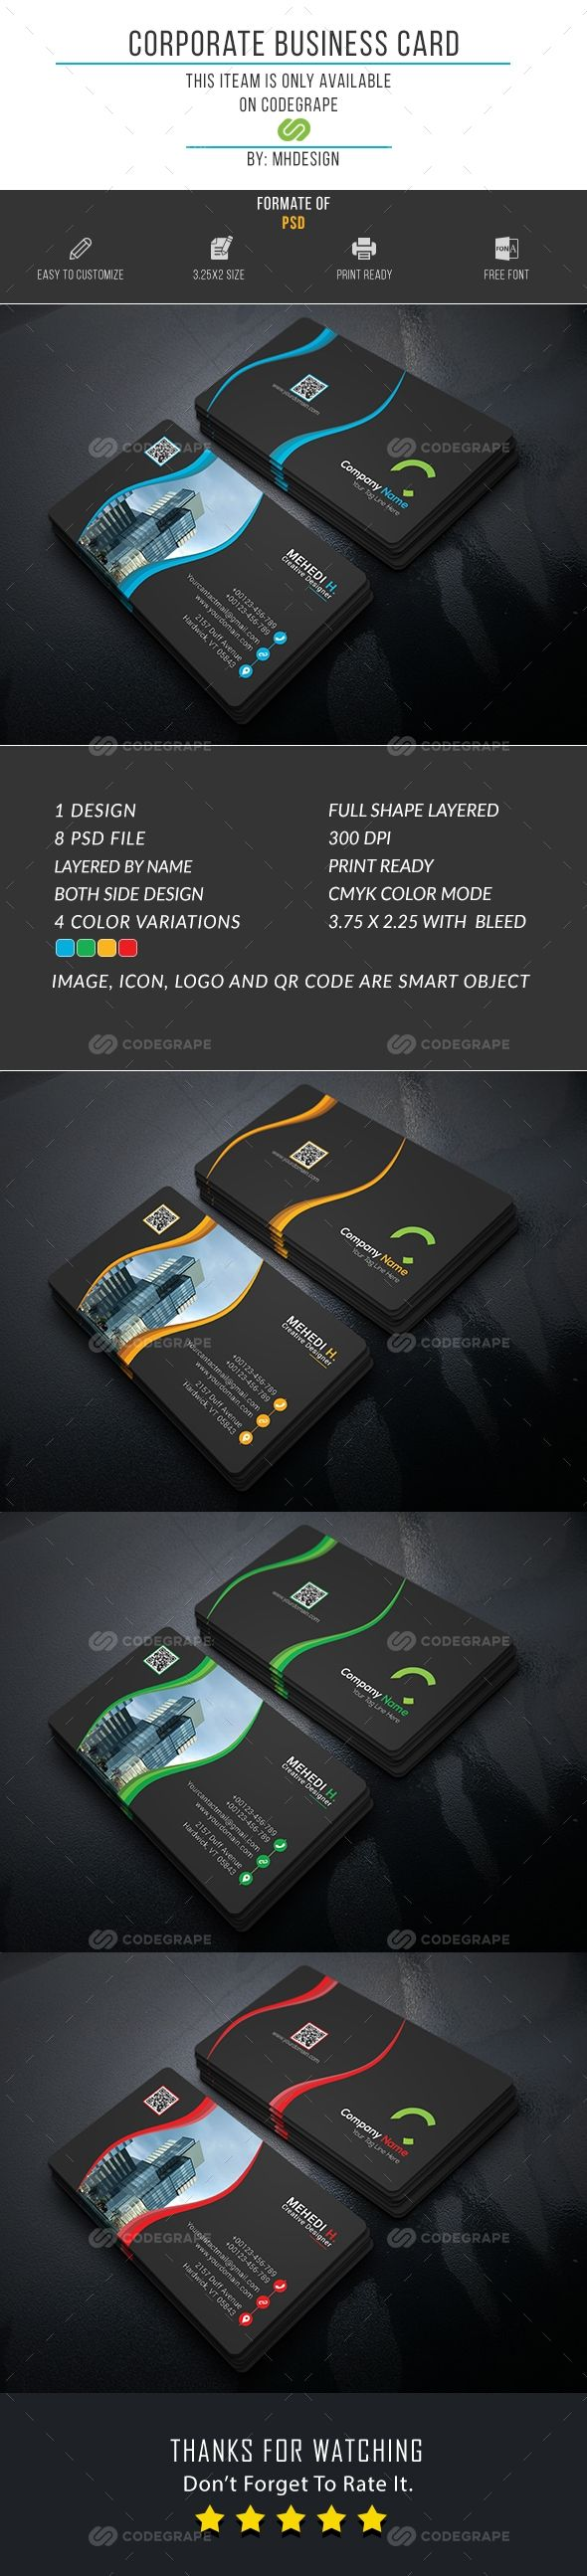 195 best business cards images on Pinterest | Card patterns ...